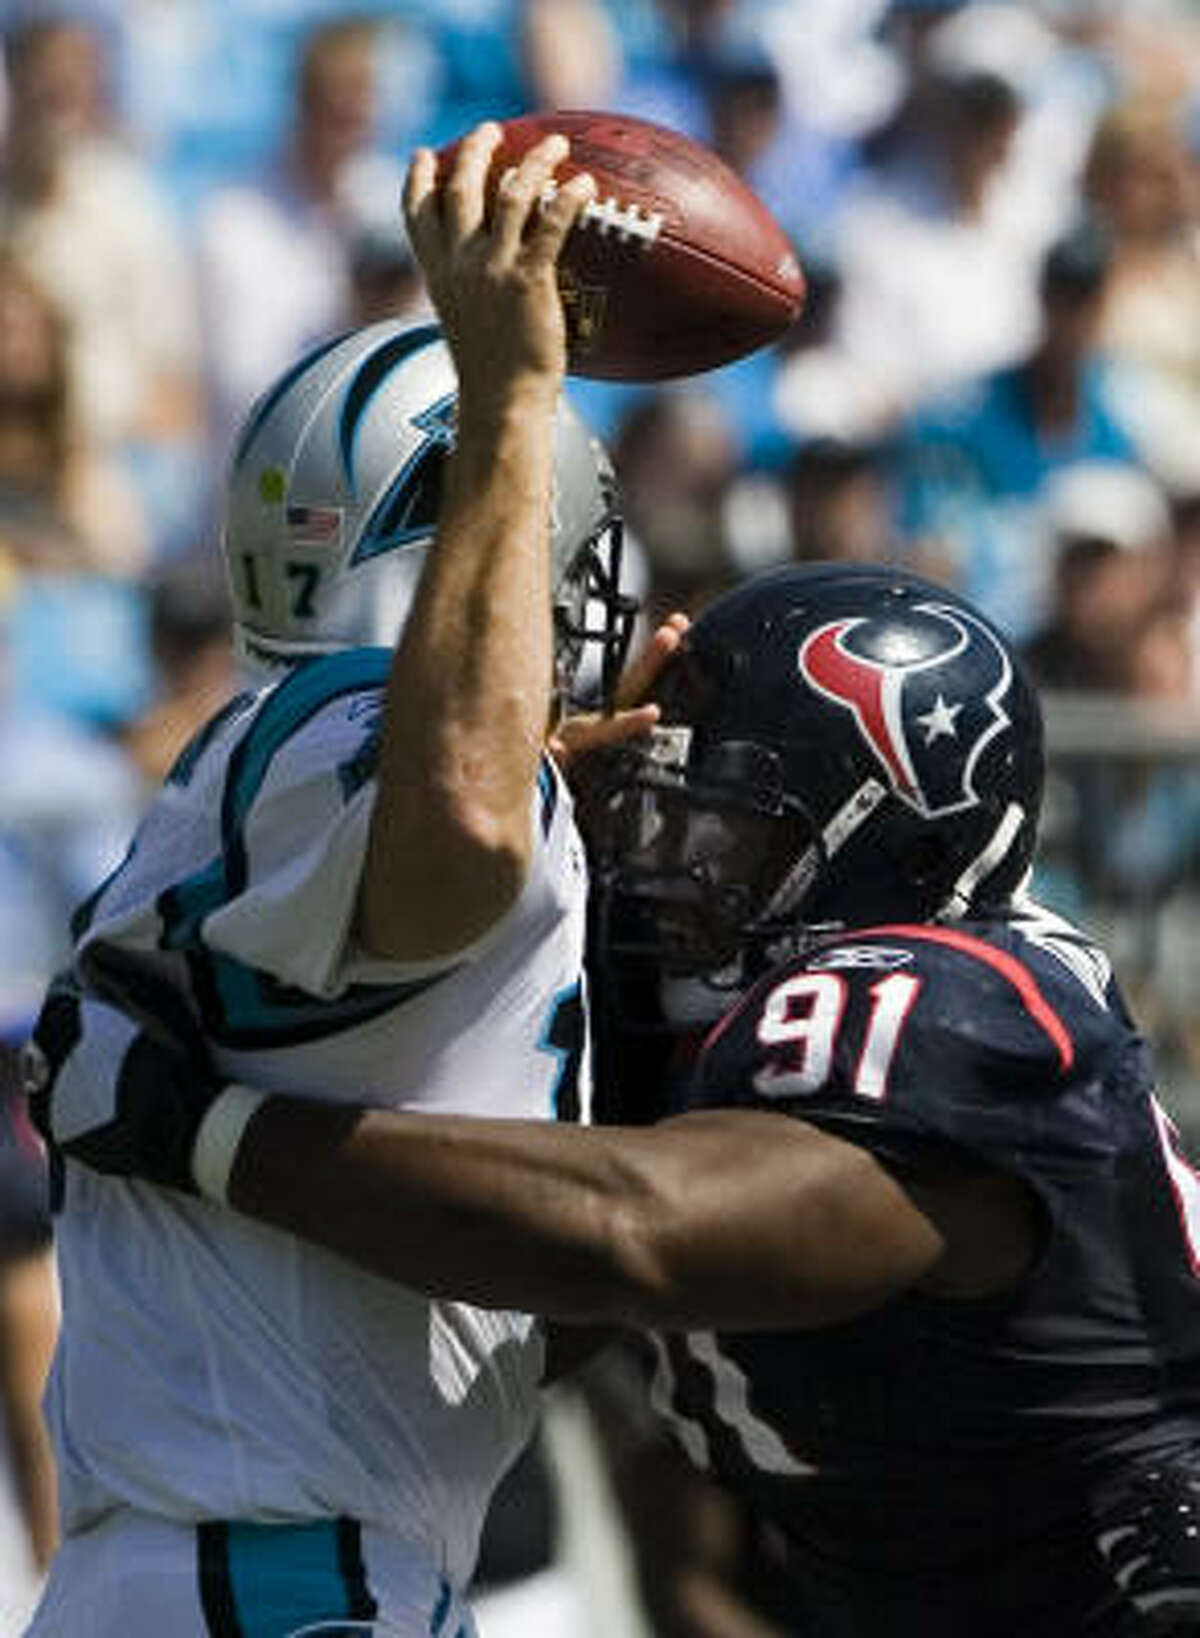 Texans defensive tackle Amobi Okoye will hand out 20 more C.A.T.E. (Changing Africa Through Education) scholarships while in Nigeria.